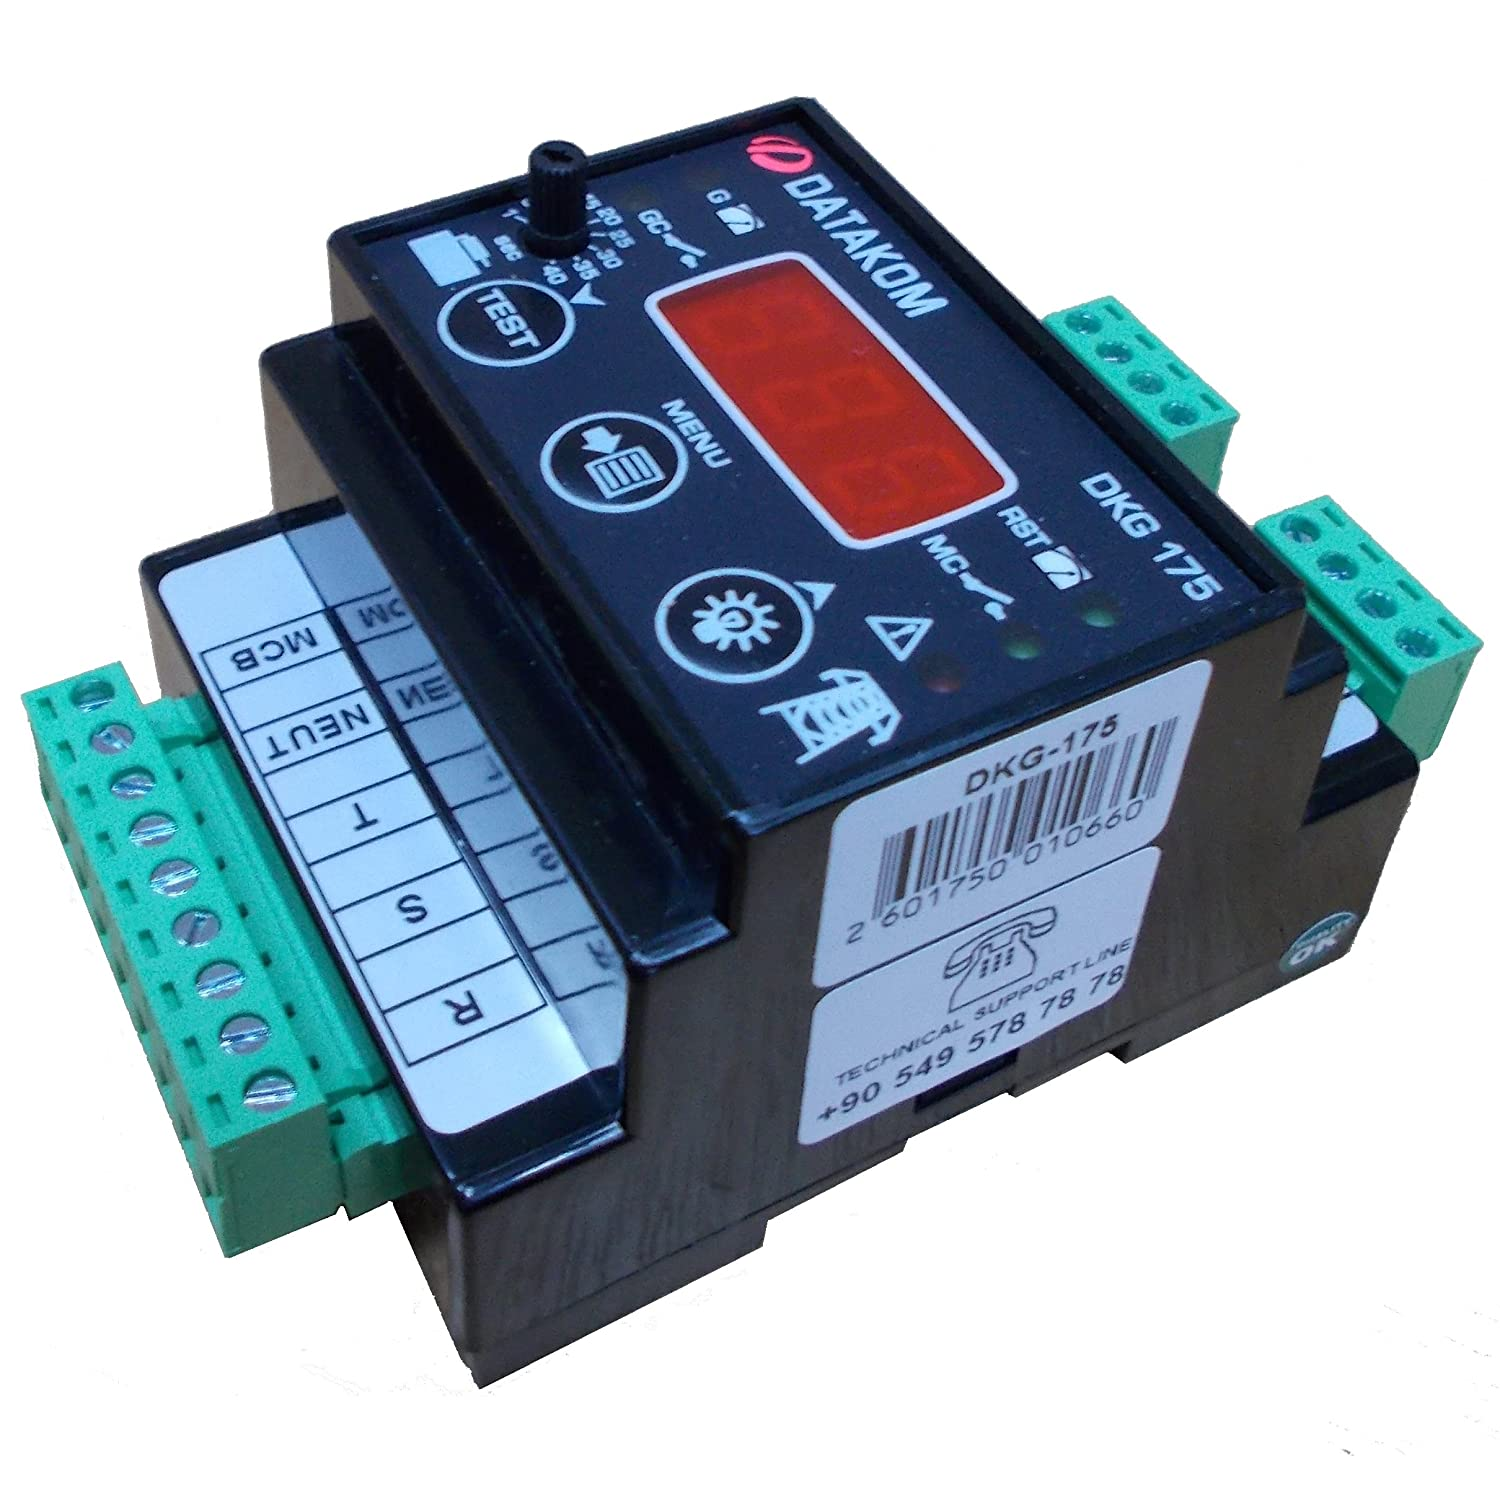 DATAKOM DKG-175 Generator/Mains Automatic Transfer Switch Controller ...